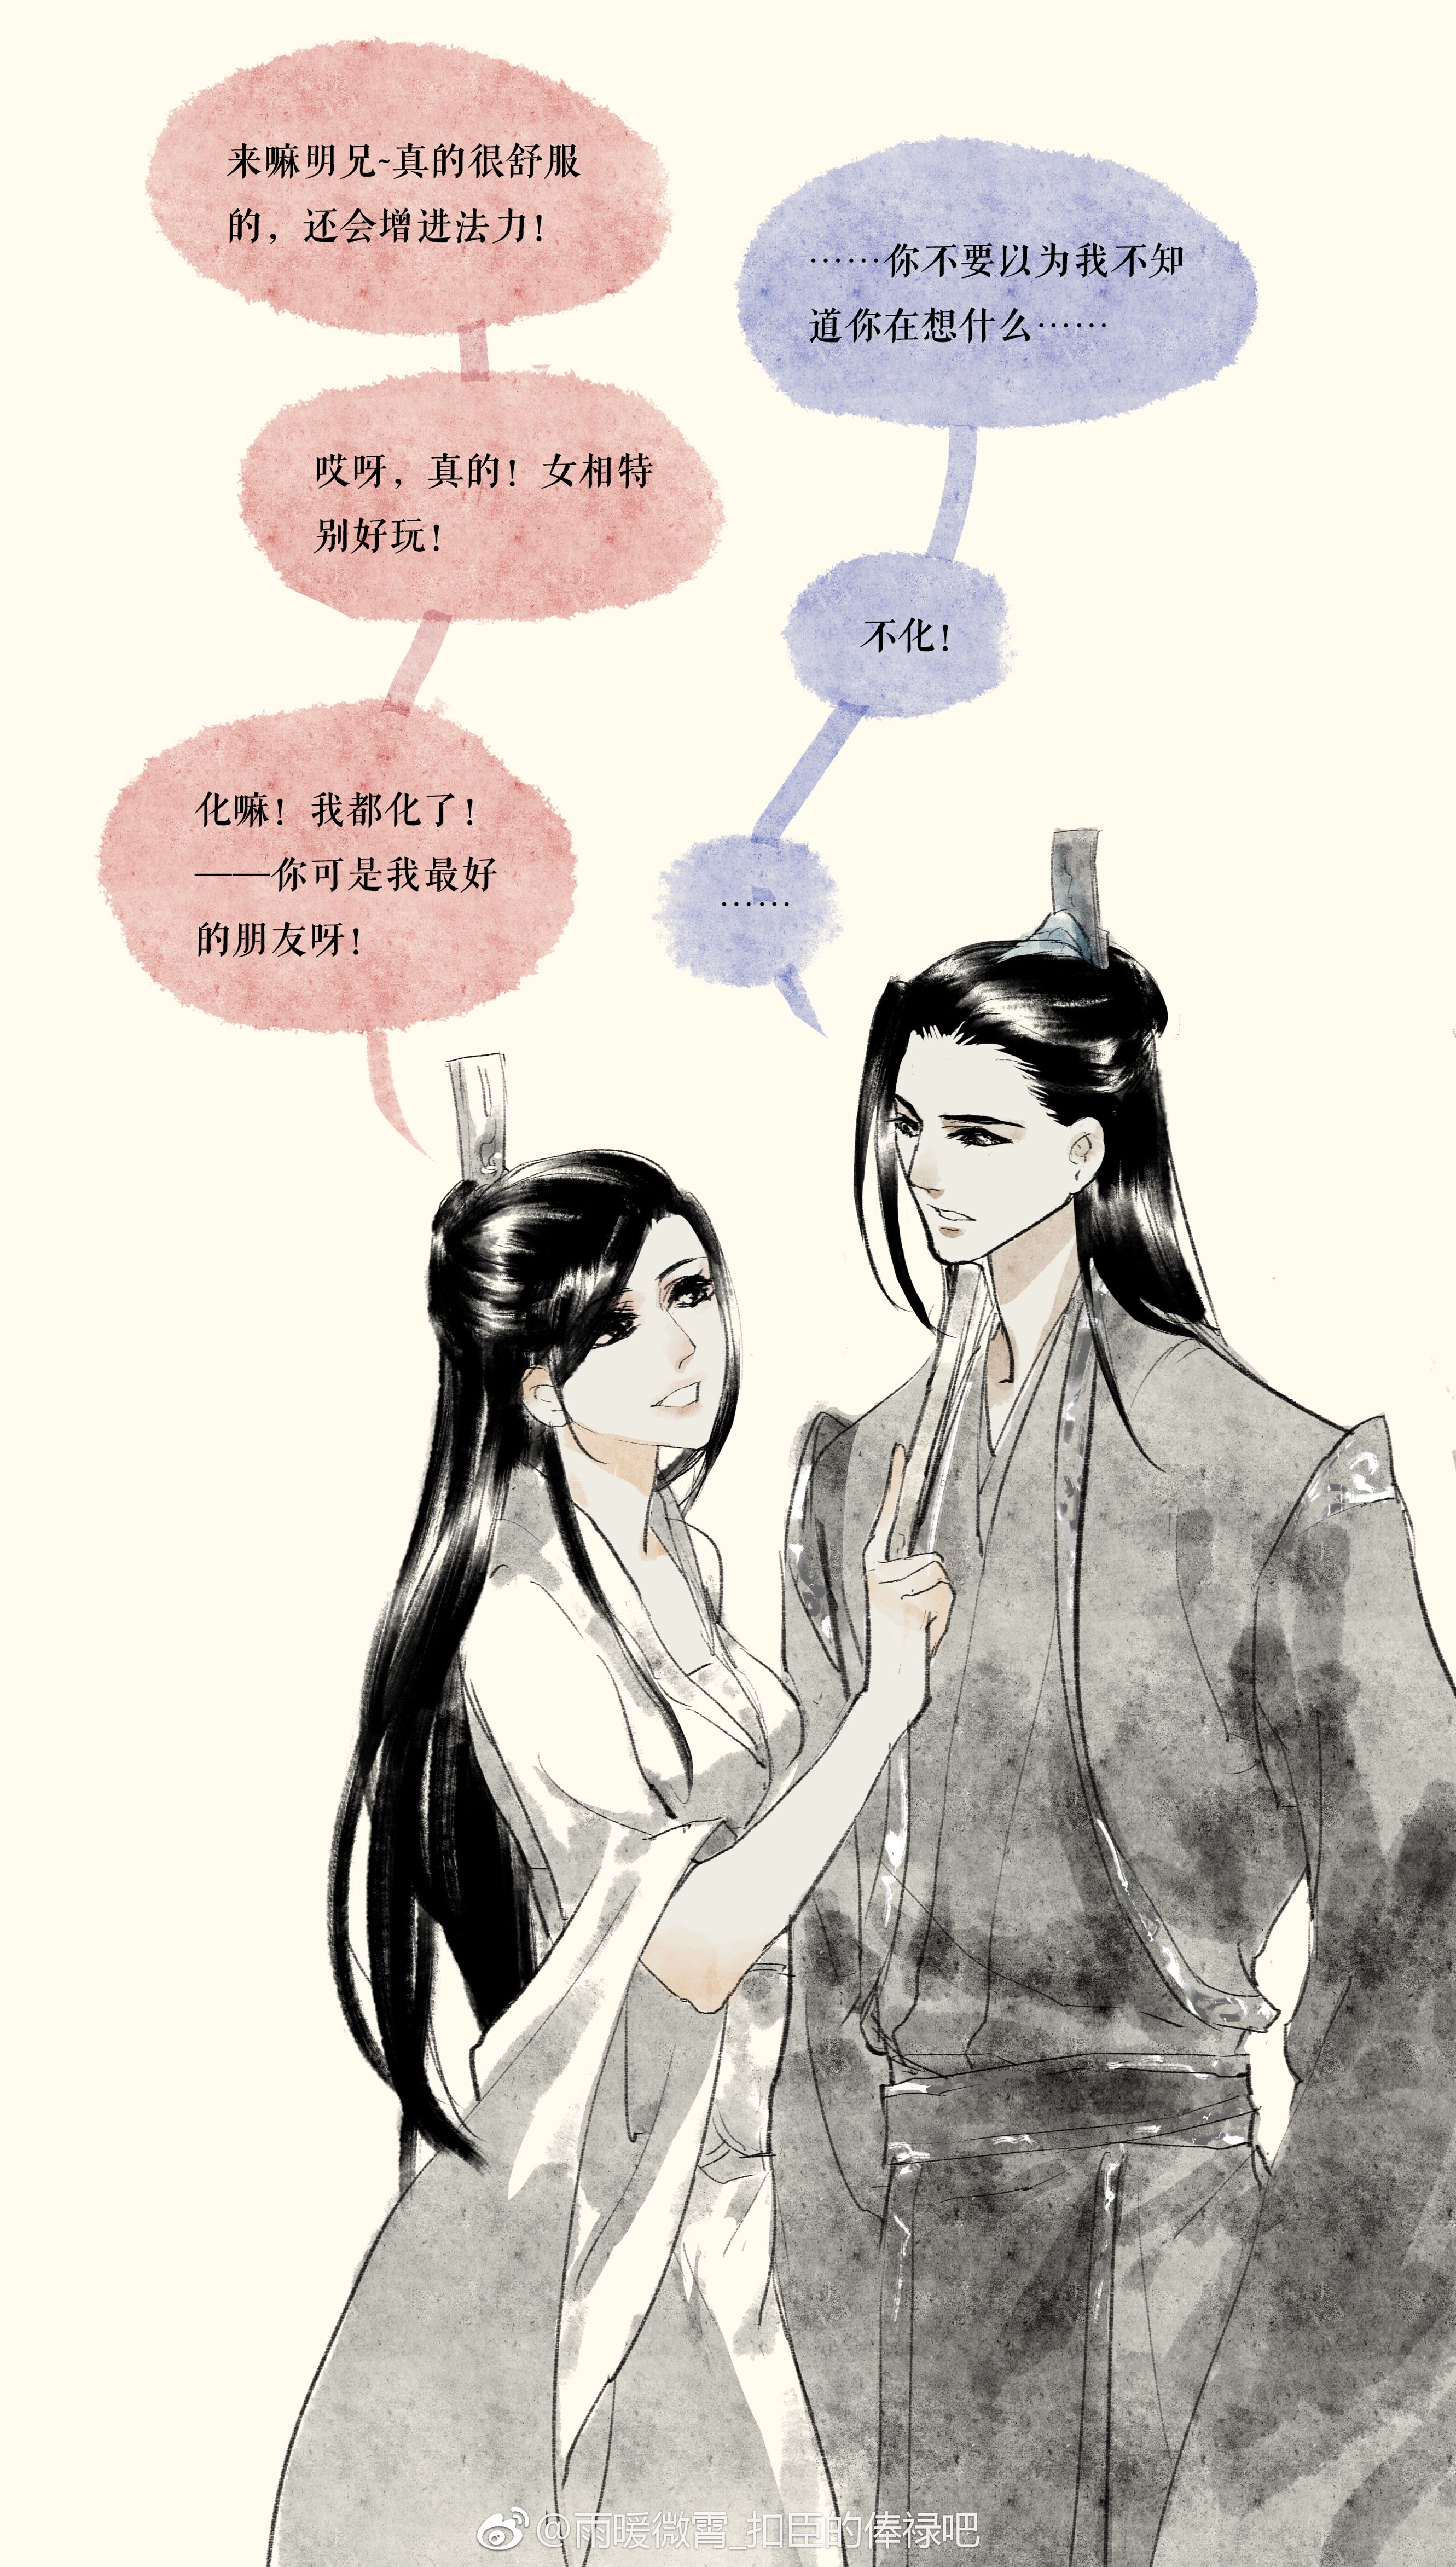 Pin by pigeonblood on 天官賜福 (With images) Asian art